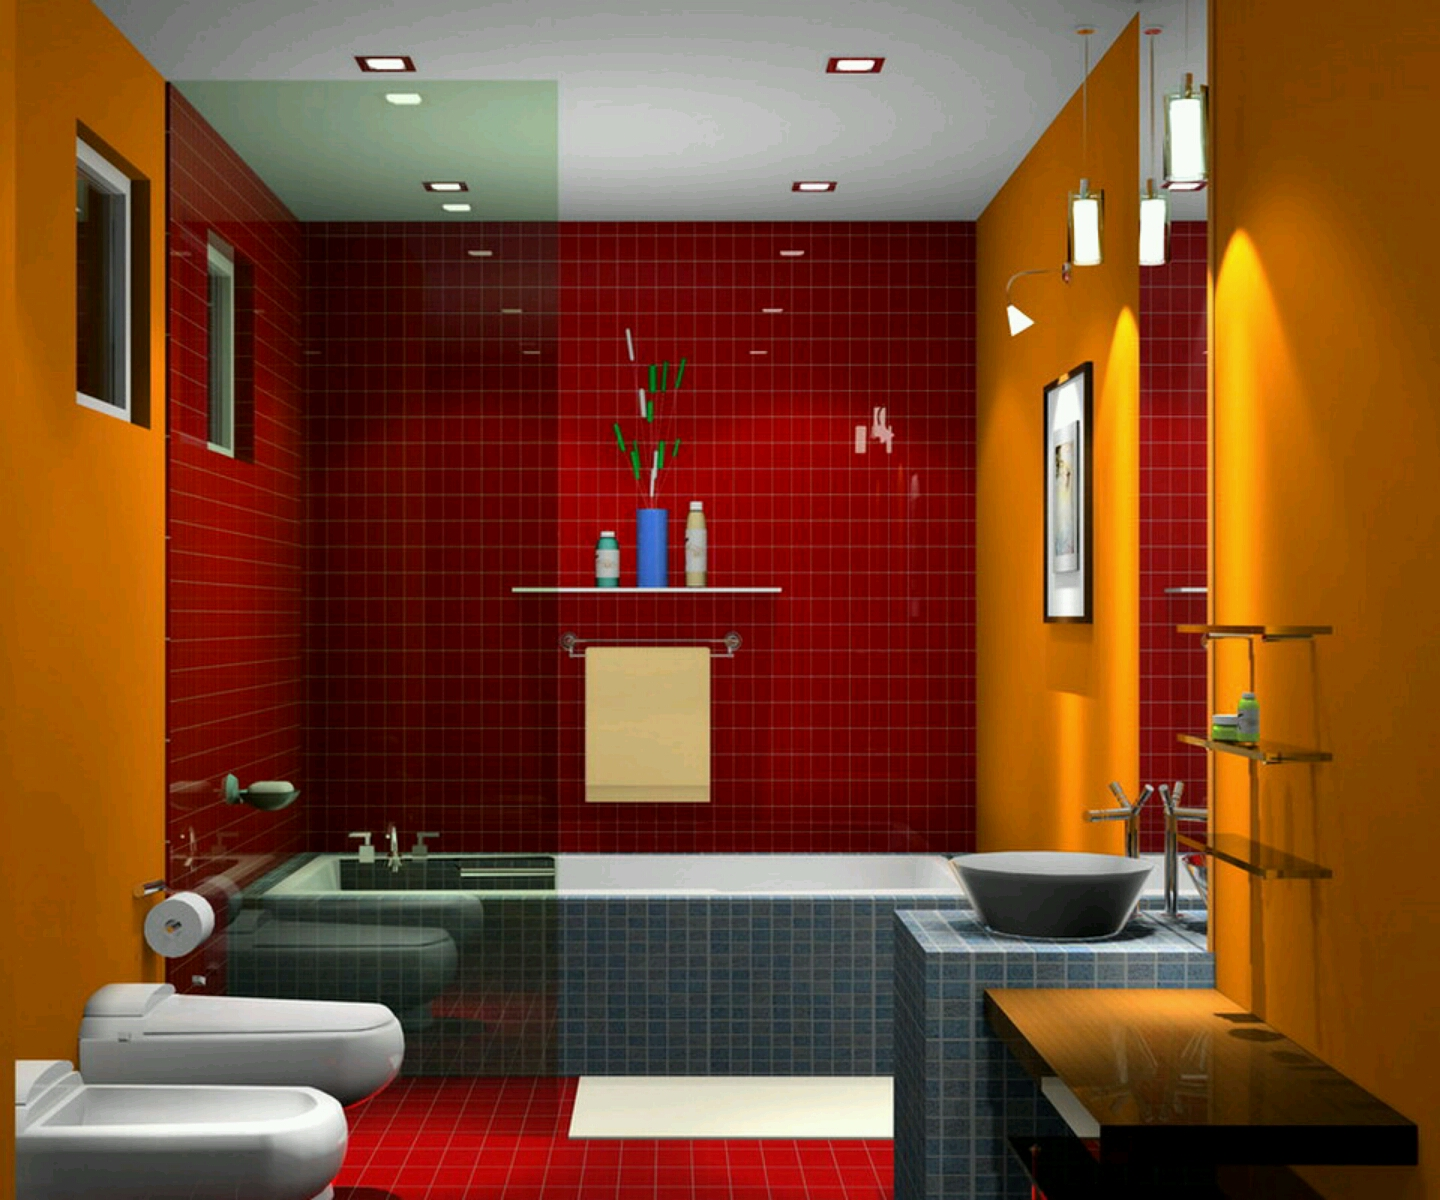 New home designs latest luxury bathrooms designs ideas for In design bathrooms